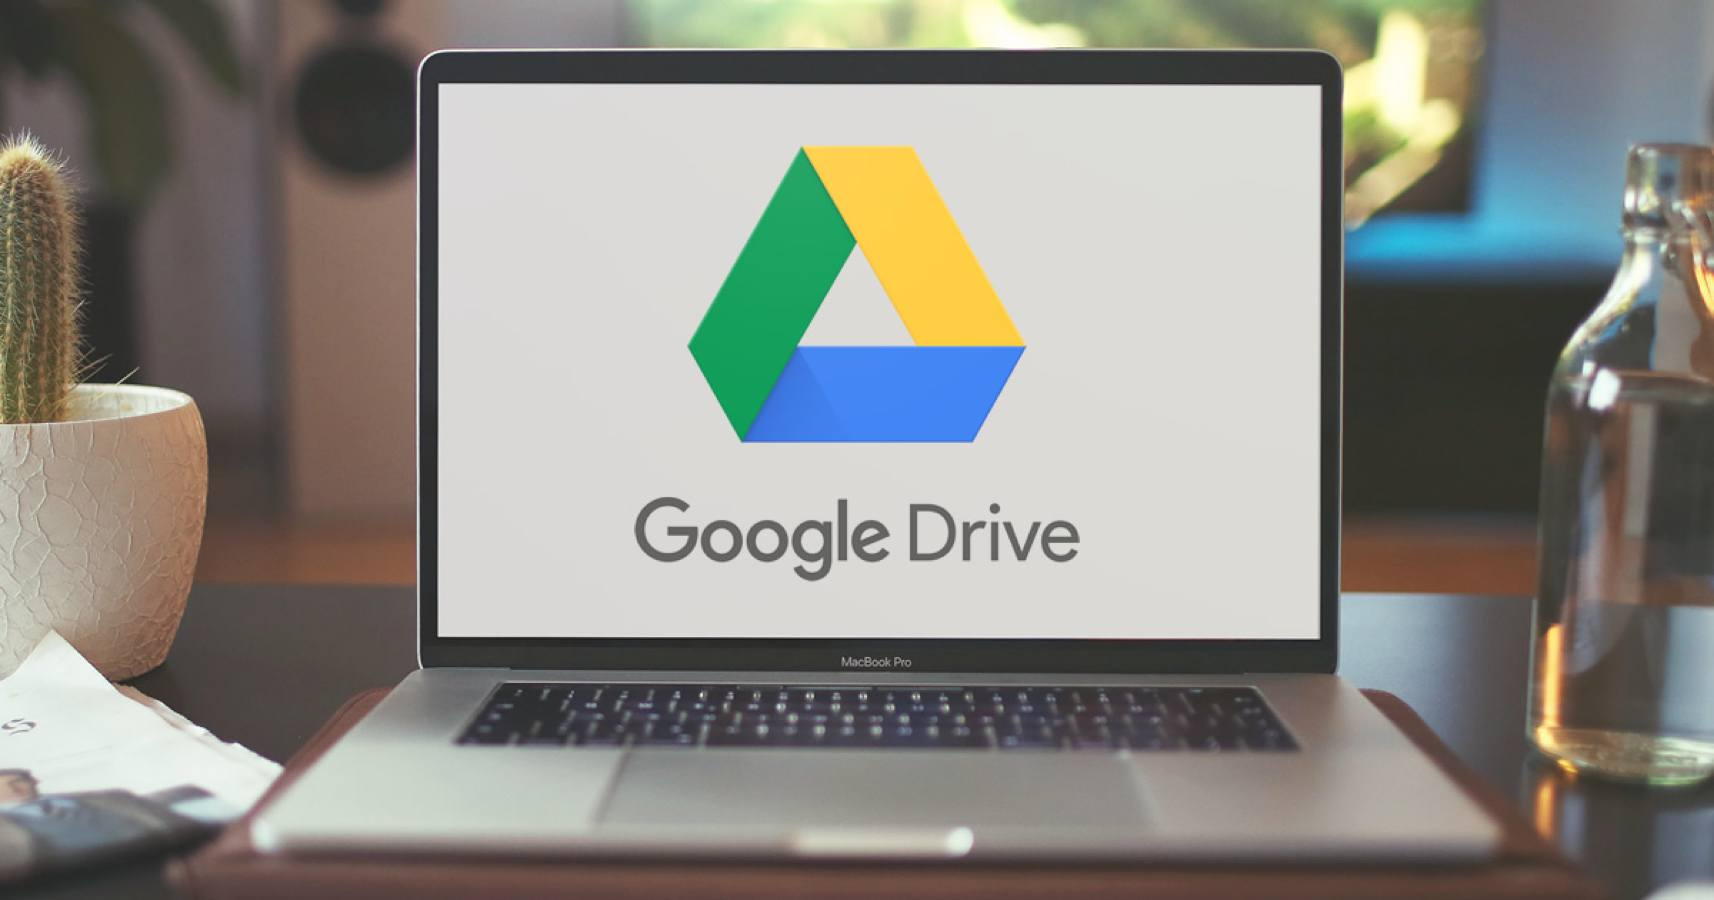 Google Drive introduces new feature to block other user to avoid harassment